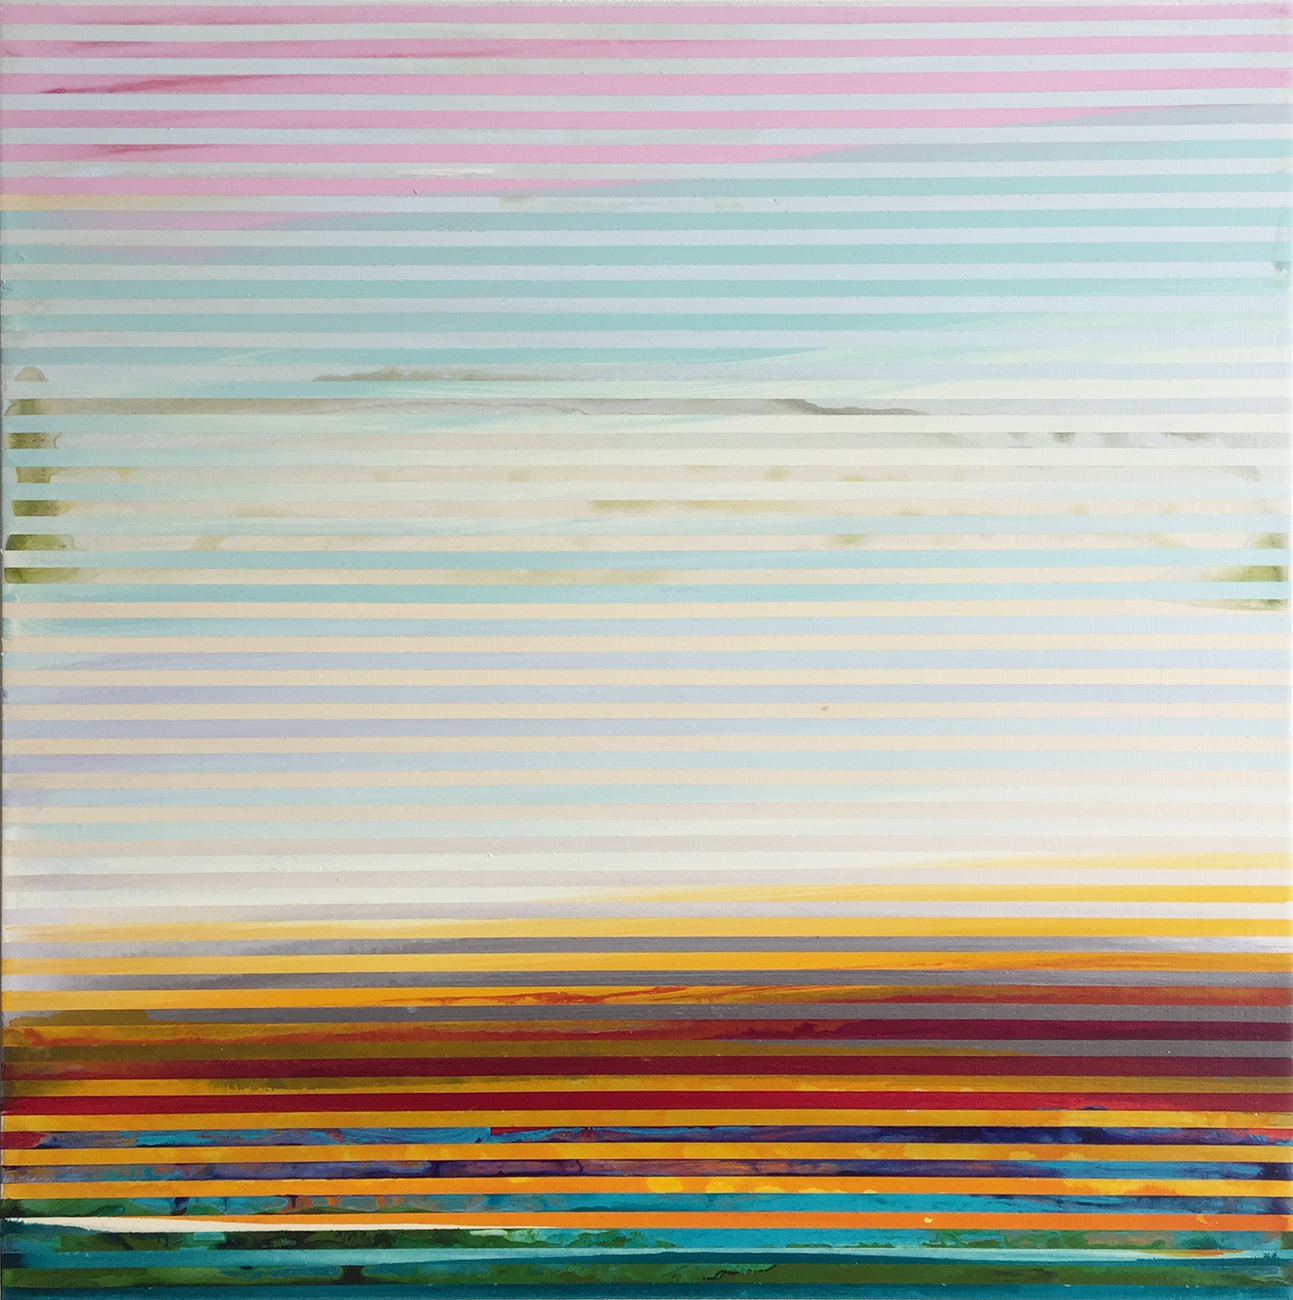 Weaving Landscape (square) 1 by Shawn Skeir